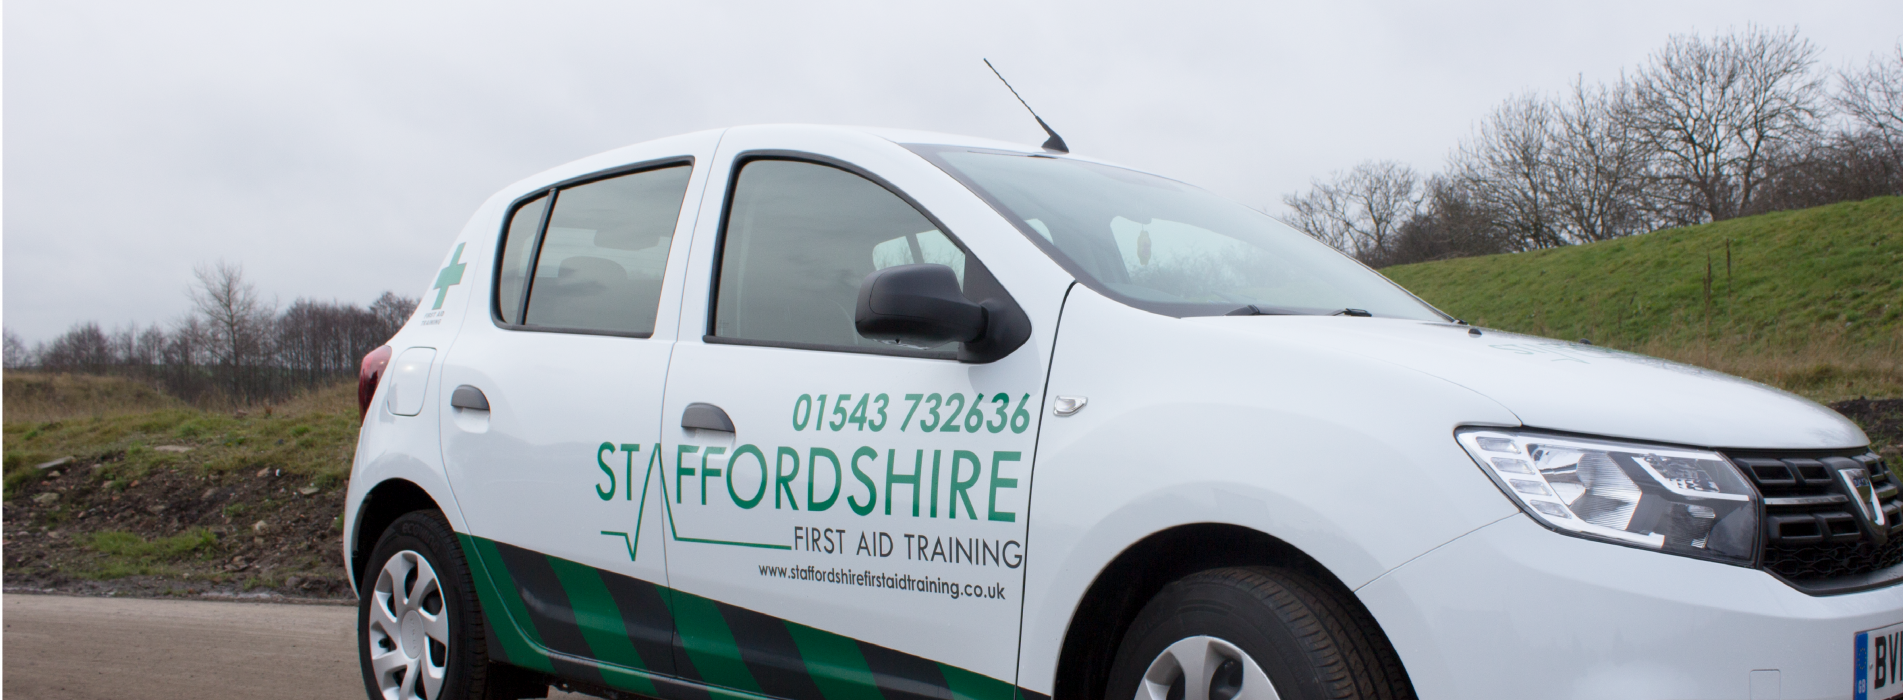 featherstone first aid training